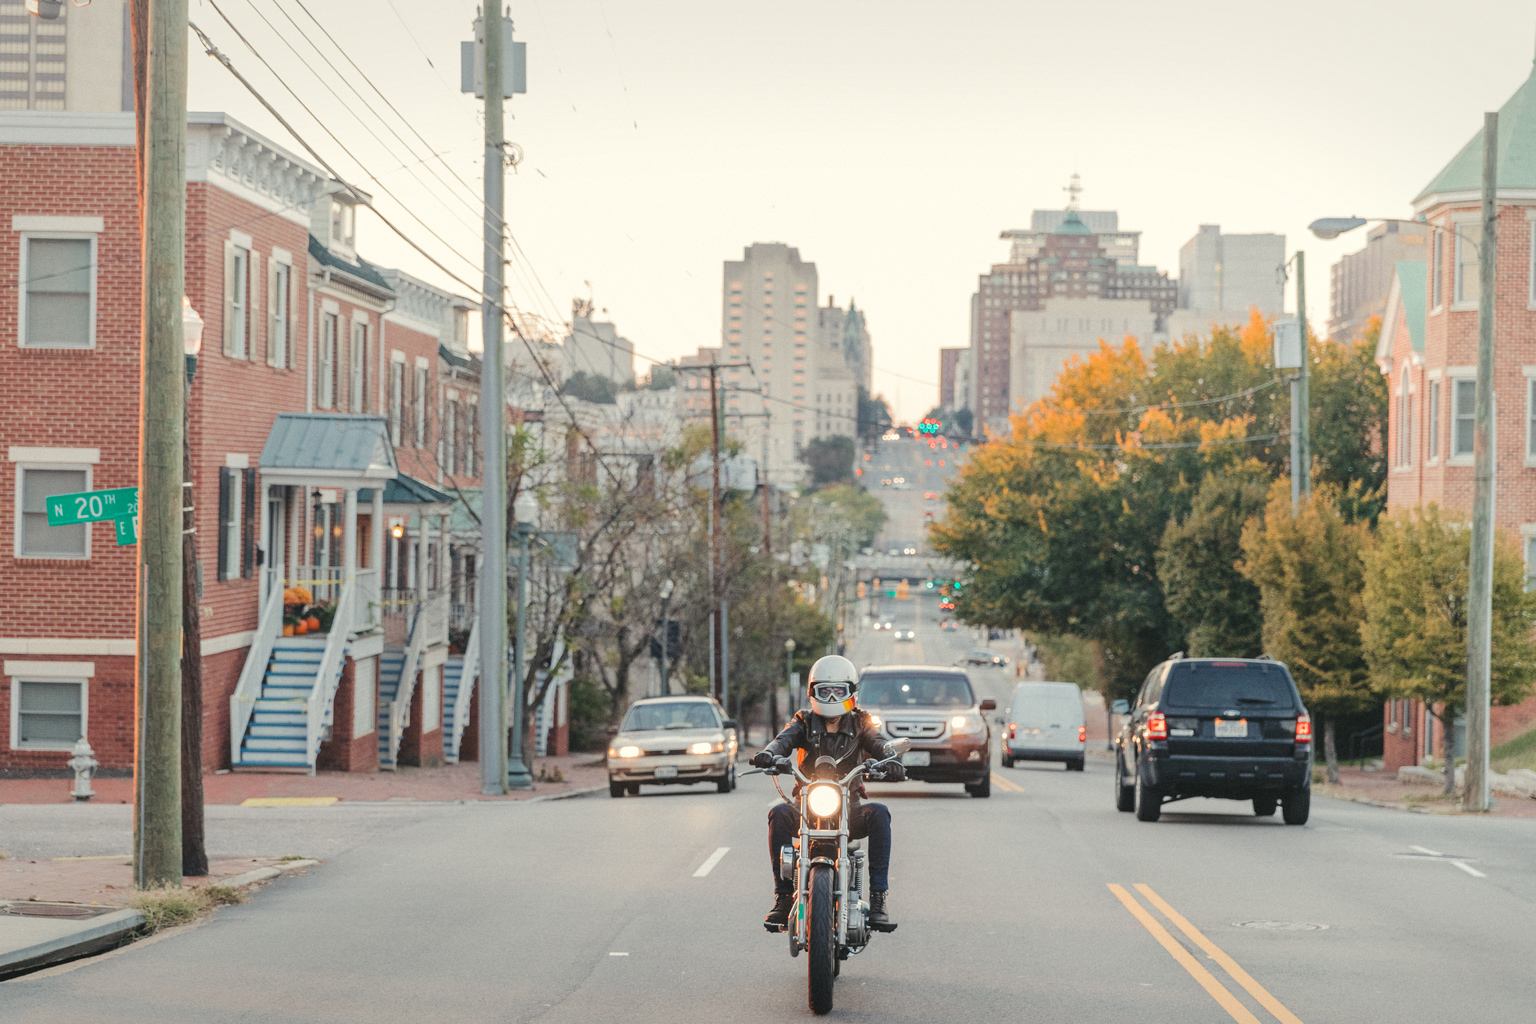 Customer and RVA Litas founder @rollinsam2 on her Sporty, coming up Broad Street into Church Hill, RVA. Photo @nickdavis_rva